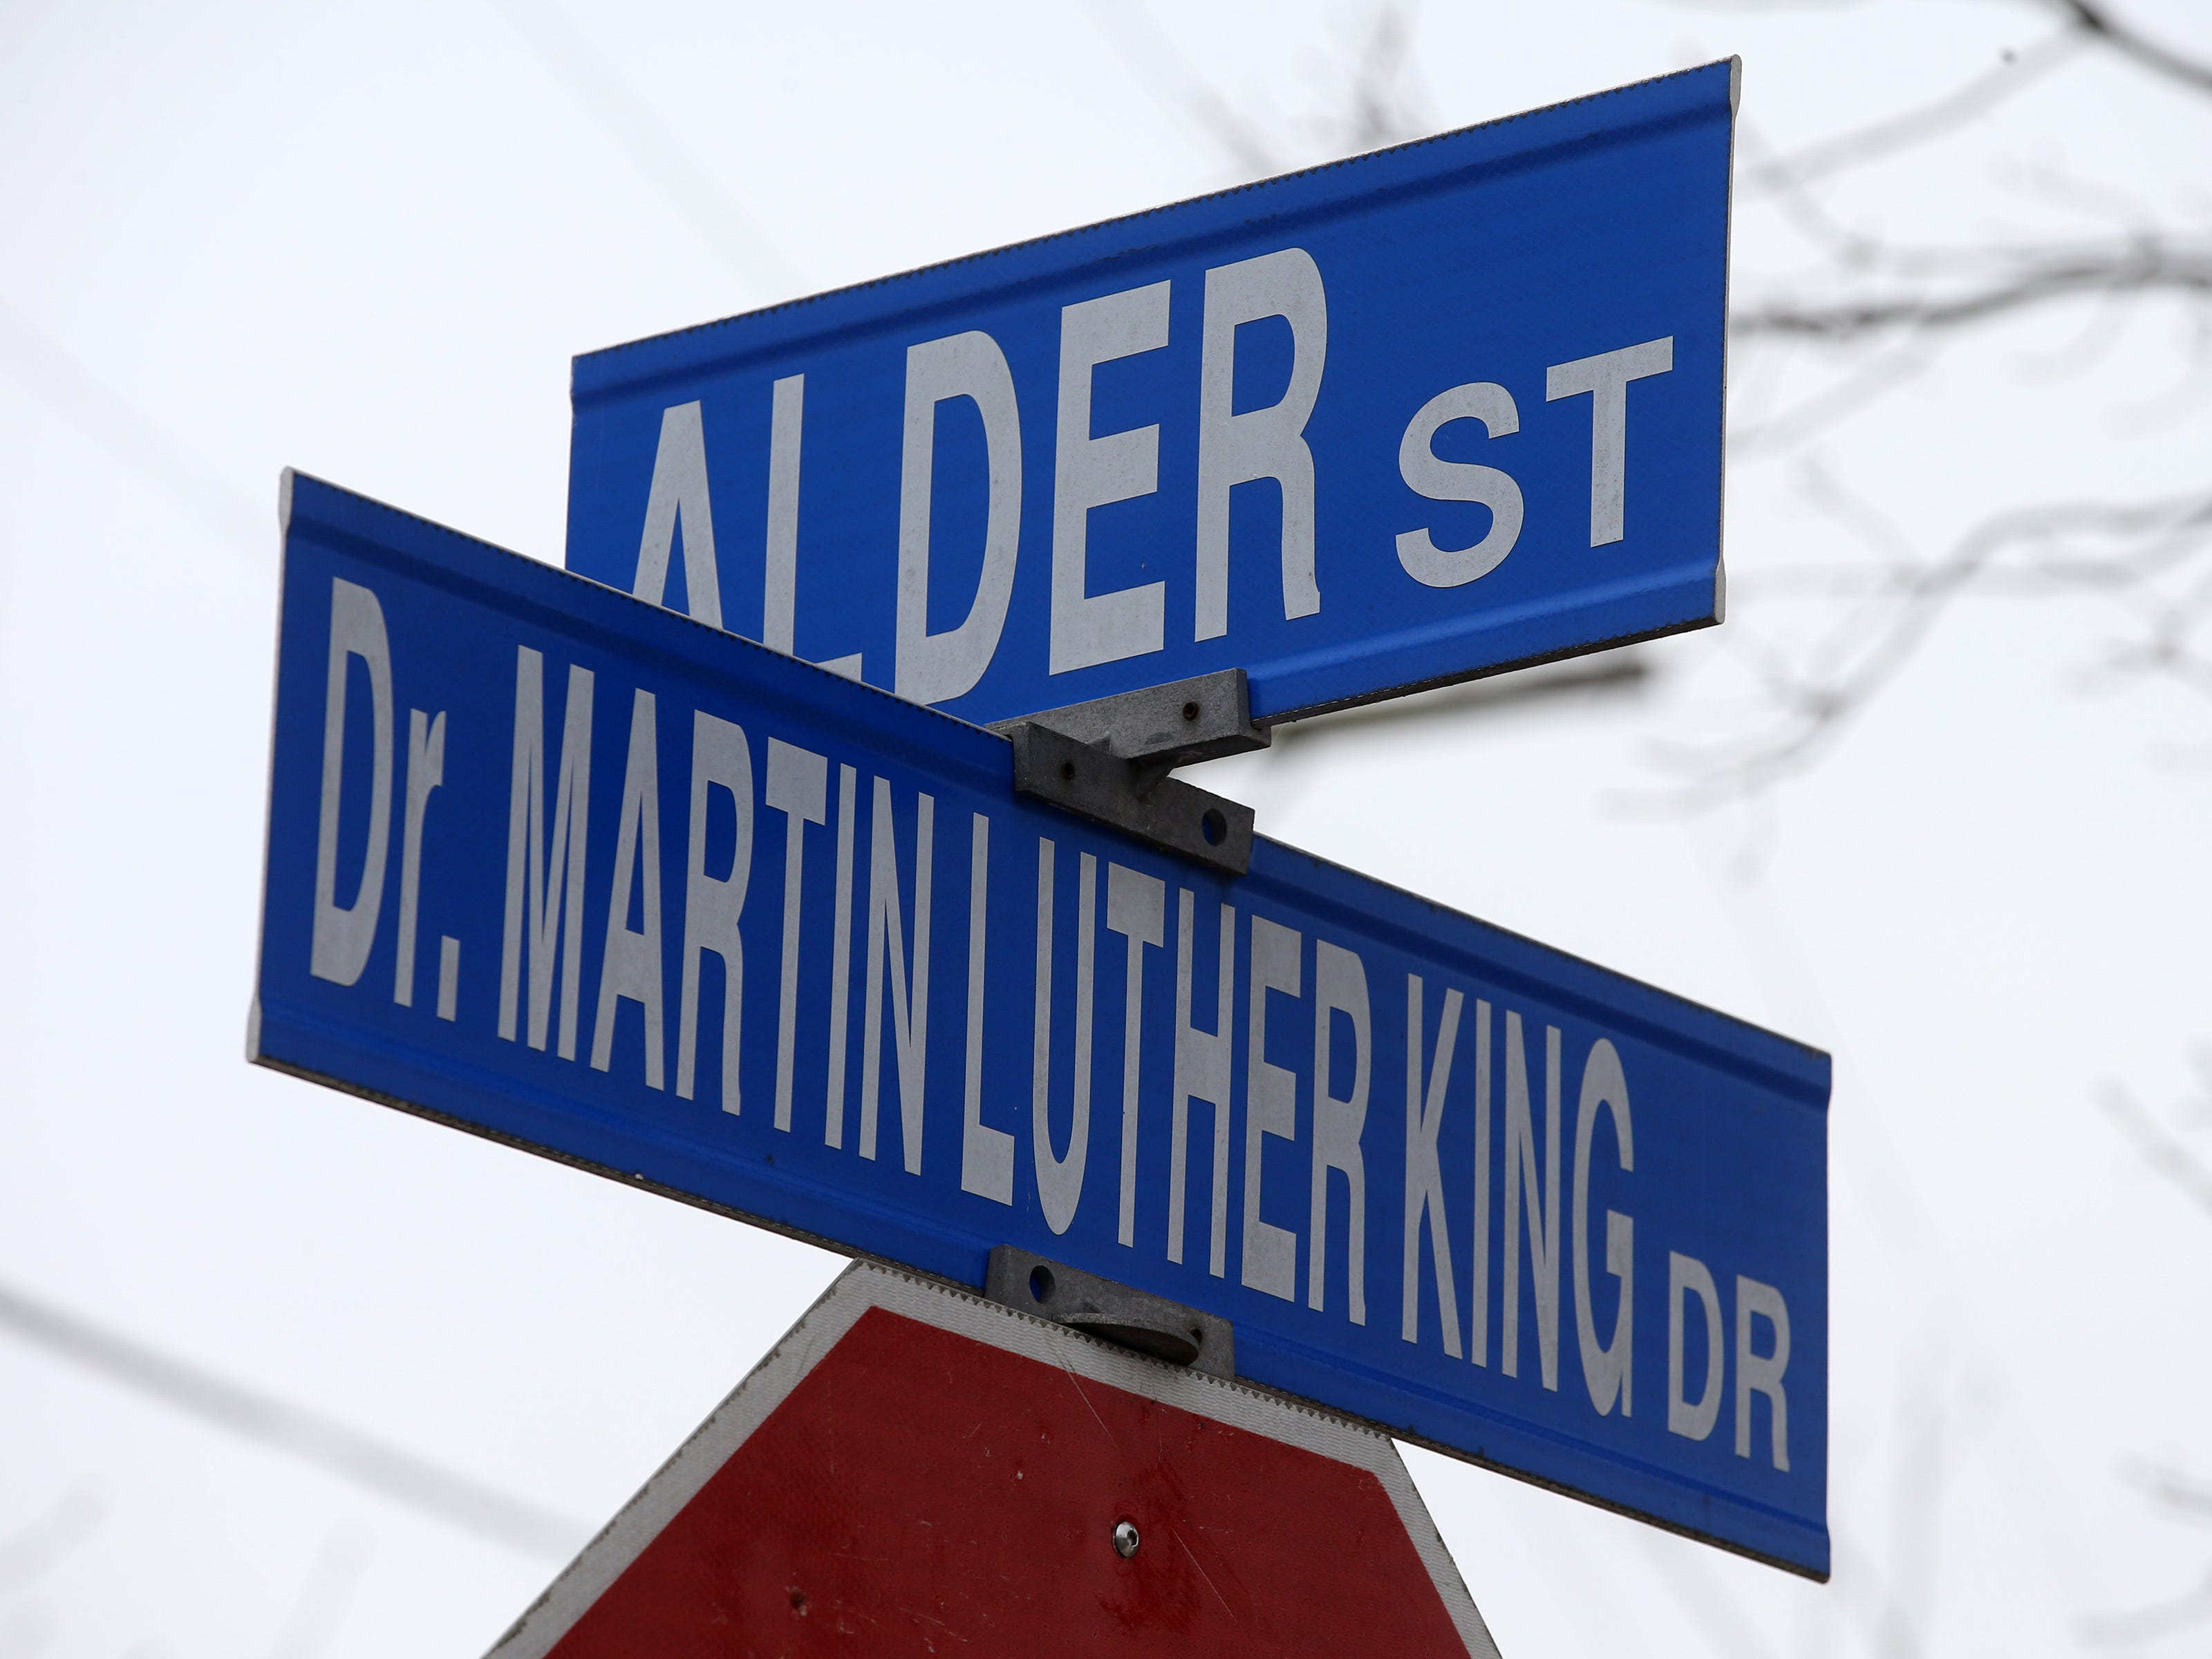 JoNancy Drummer of Lakewood describes how Lakewood and Dr. Martin Luther King Drive changed over the years in Lakewood, NJ Wednesday January 16, 2019. View of Dr. Martin Luther King Jr. Drive in Lakewood.